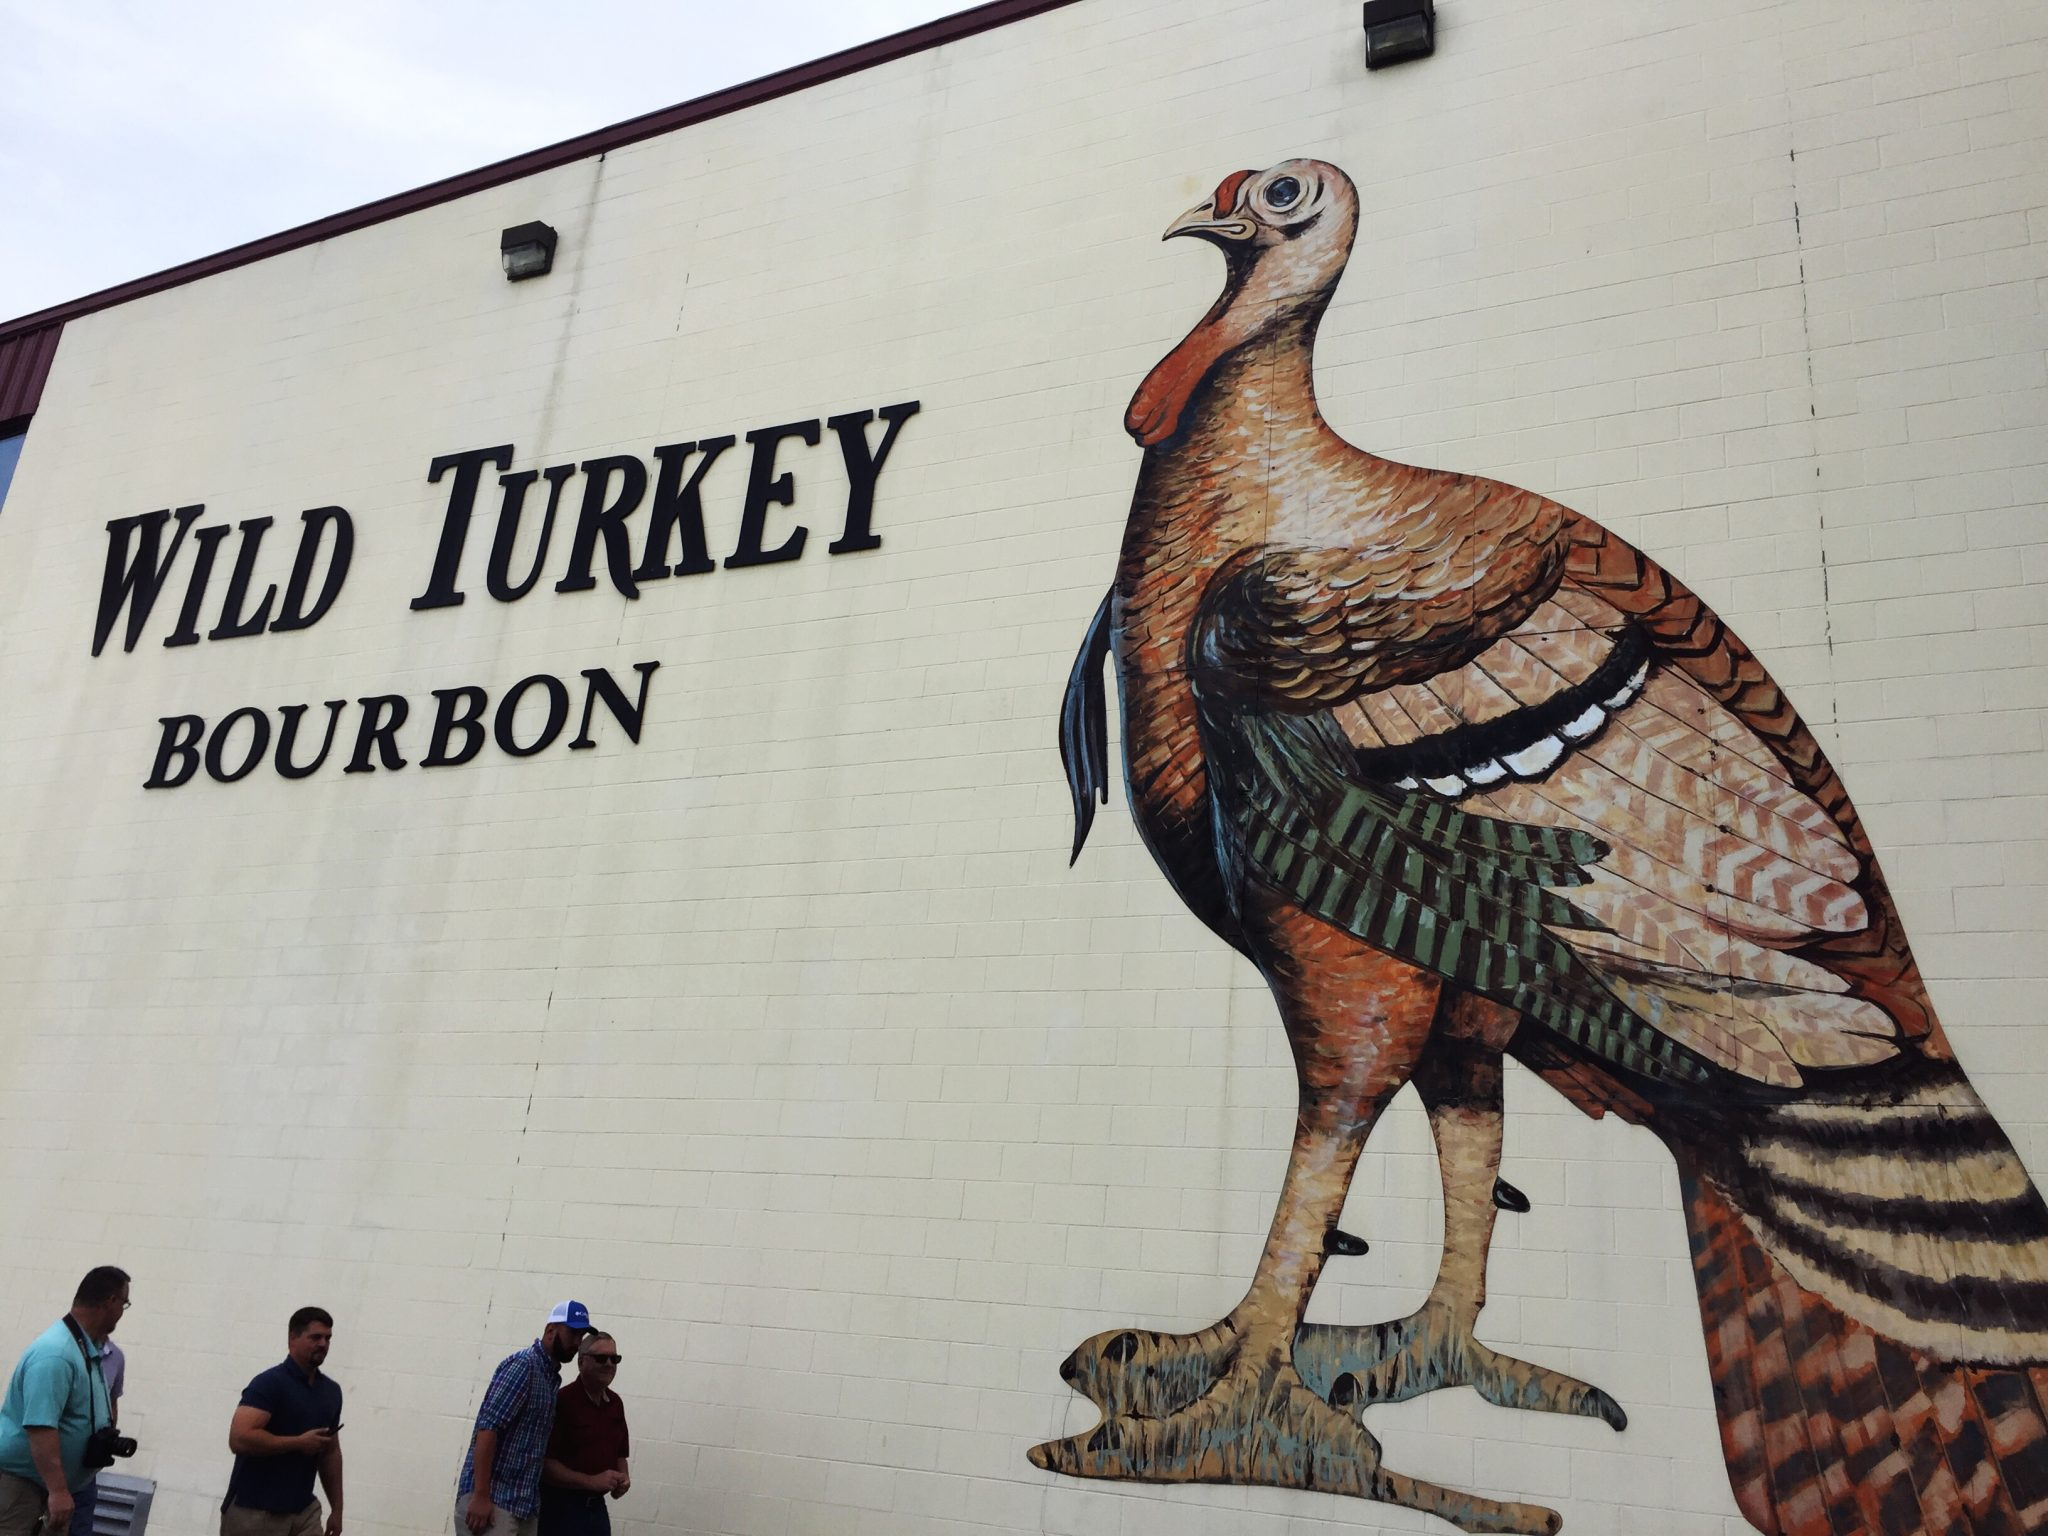 The Wild Turkey Distillery